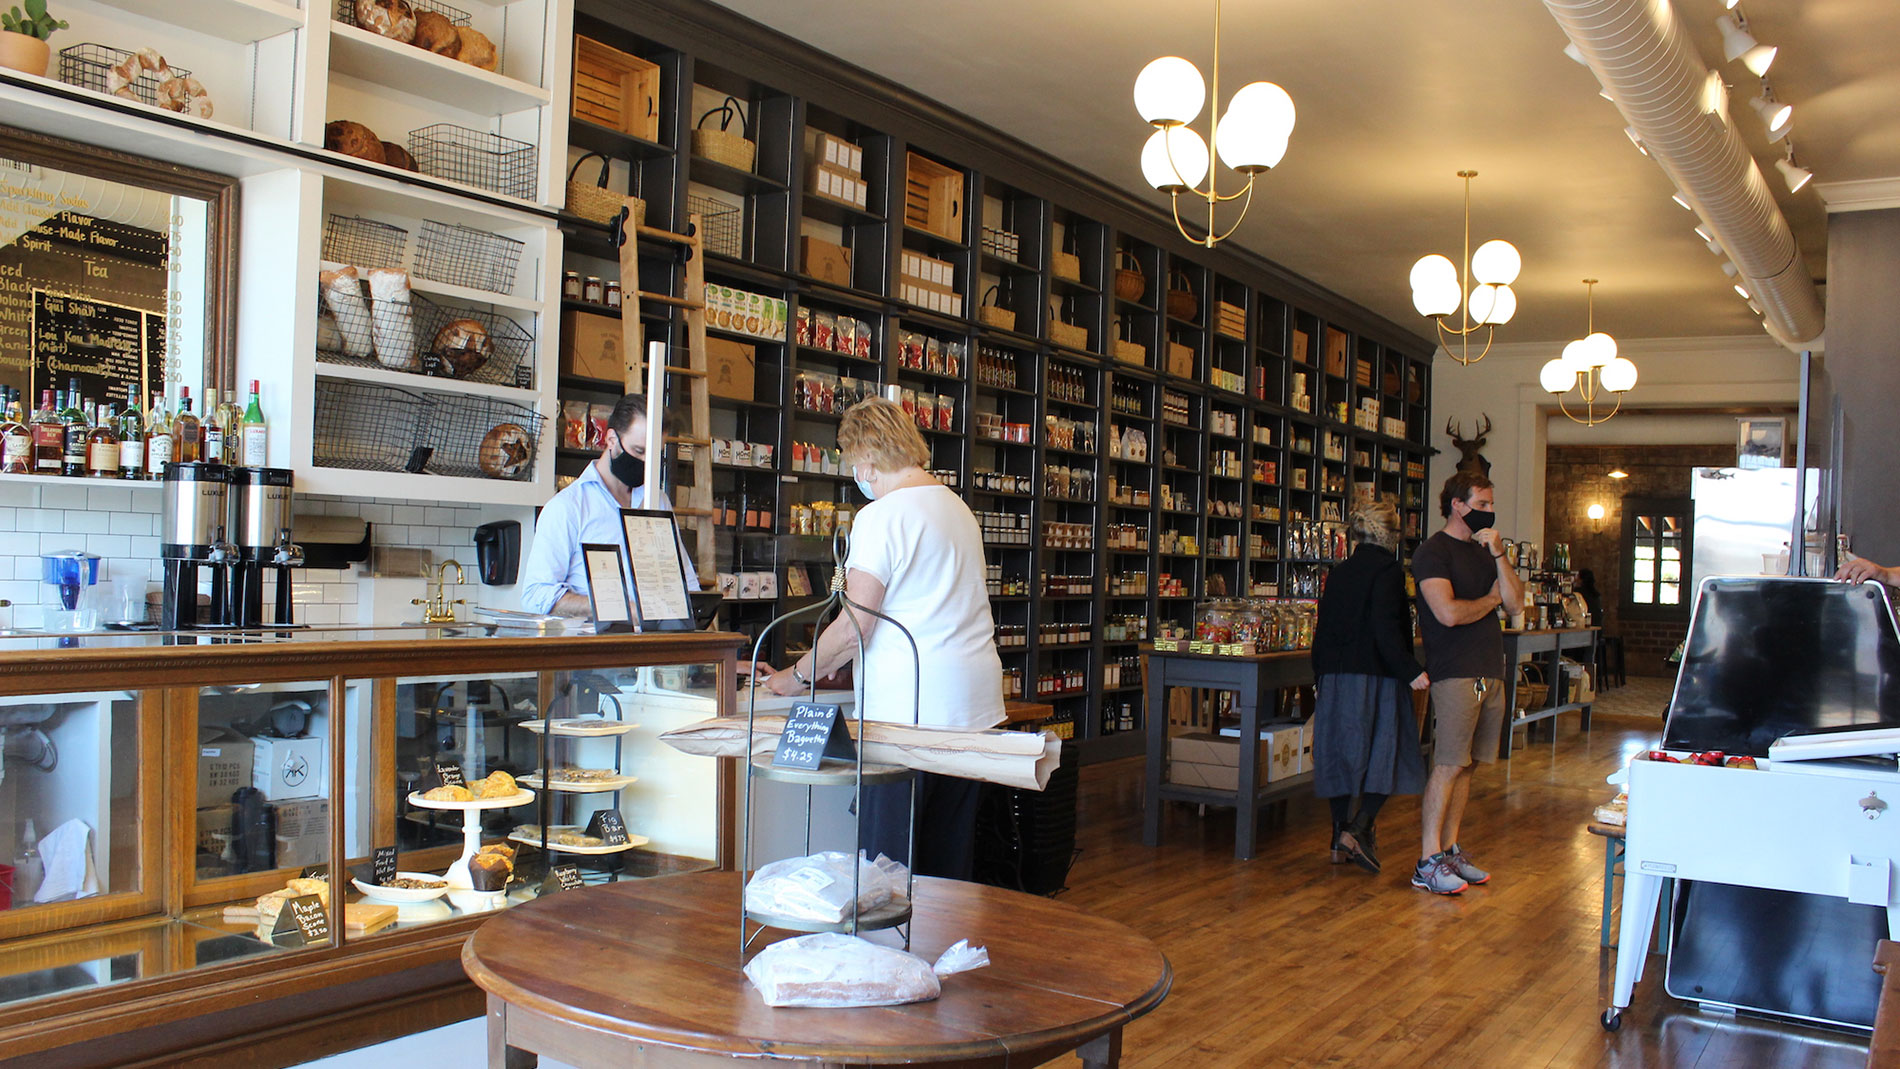 the annex coffee and foods in Webster groves, Missouri